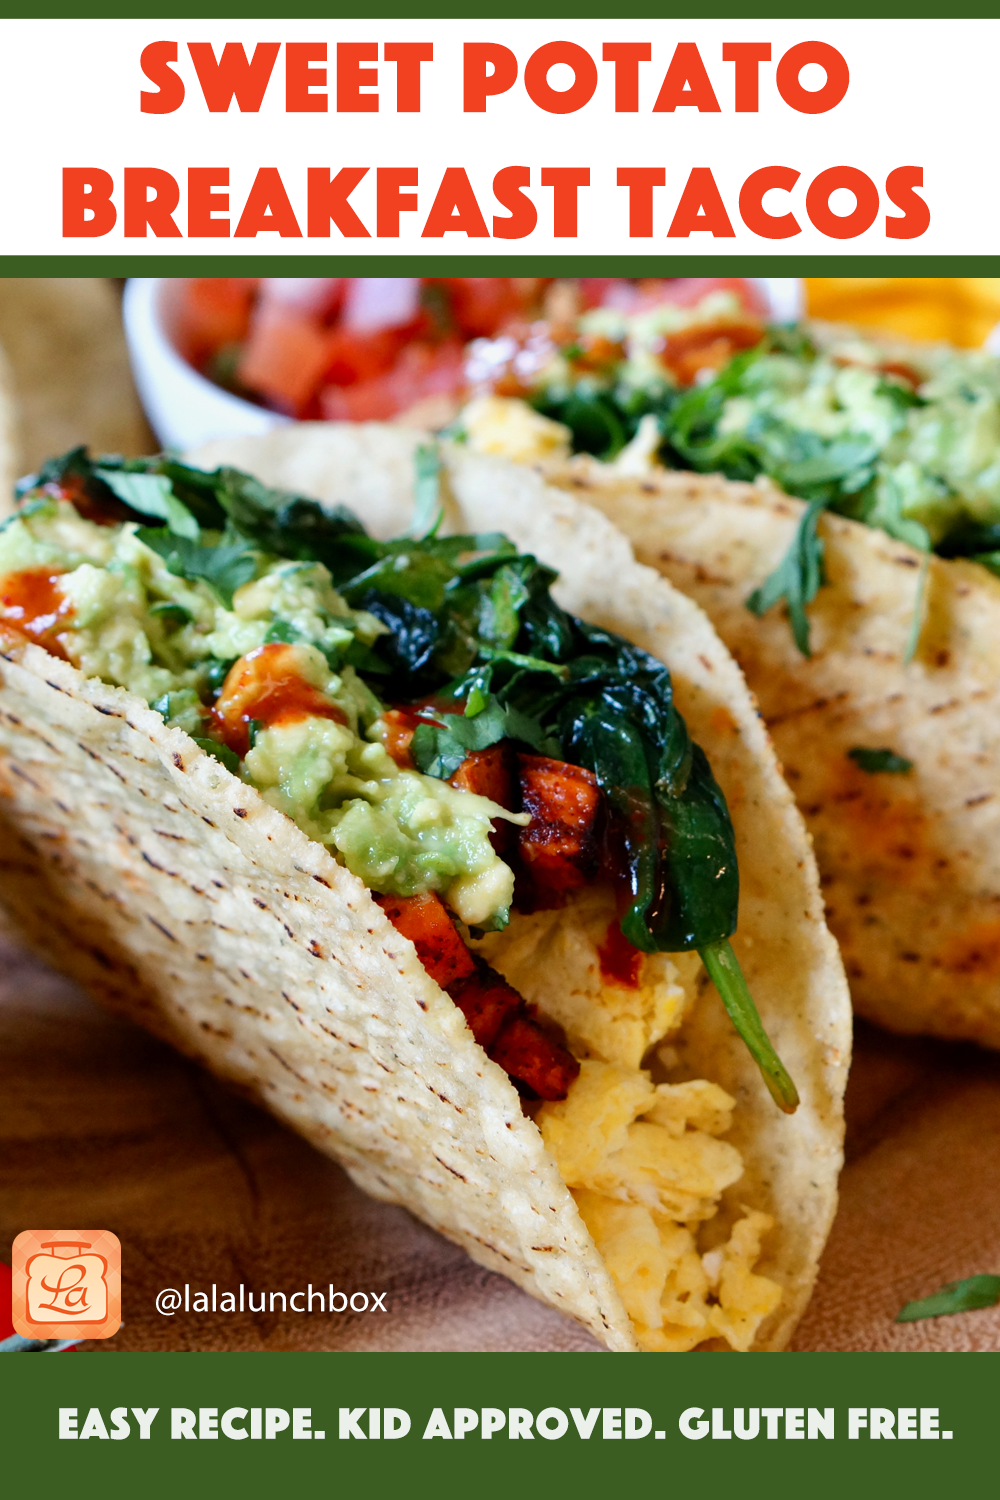 Sweet Potato Breakfast Tacos